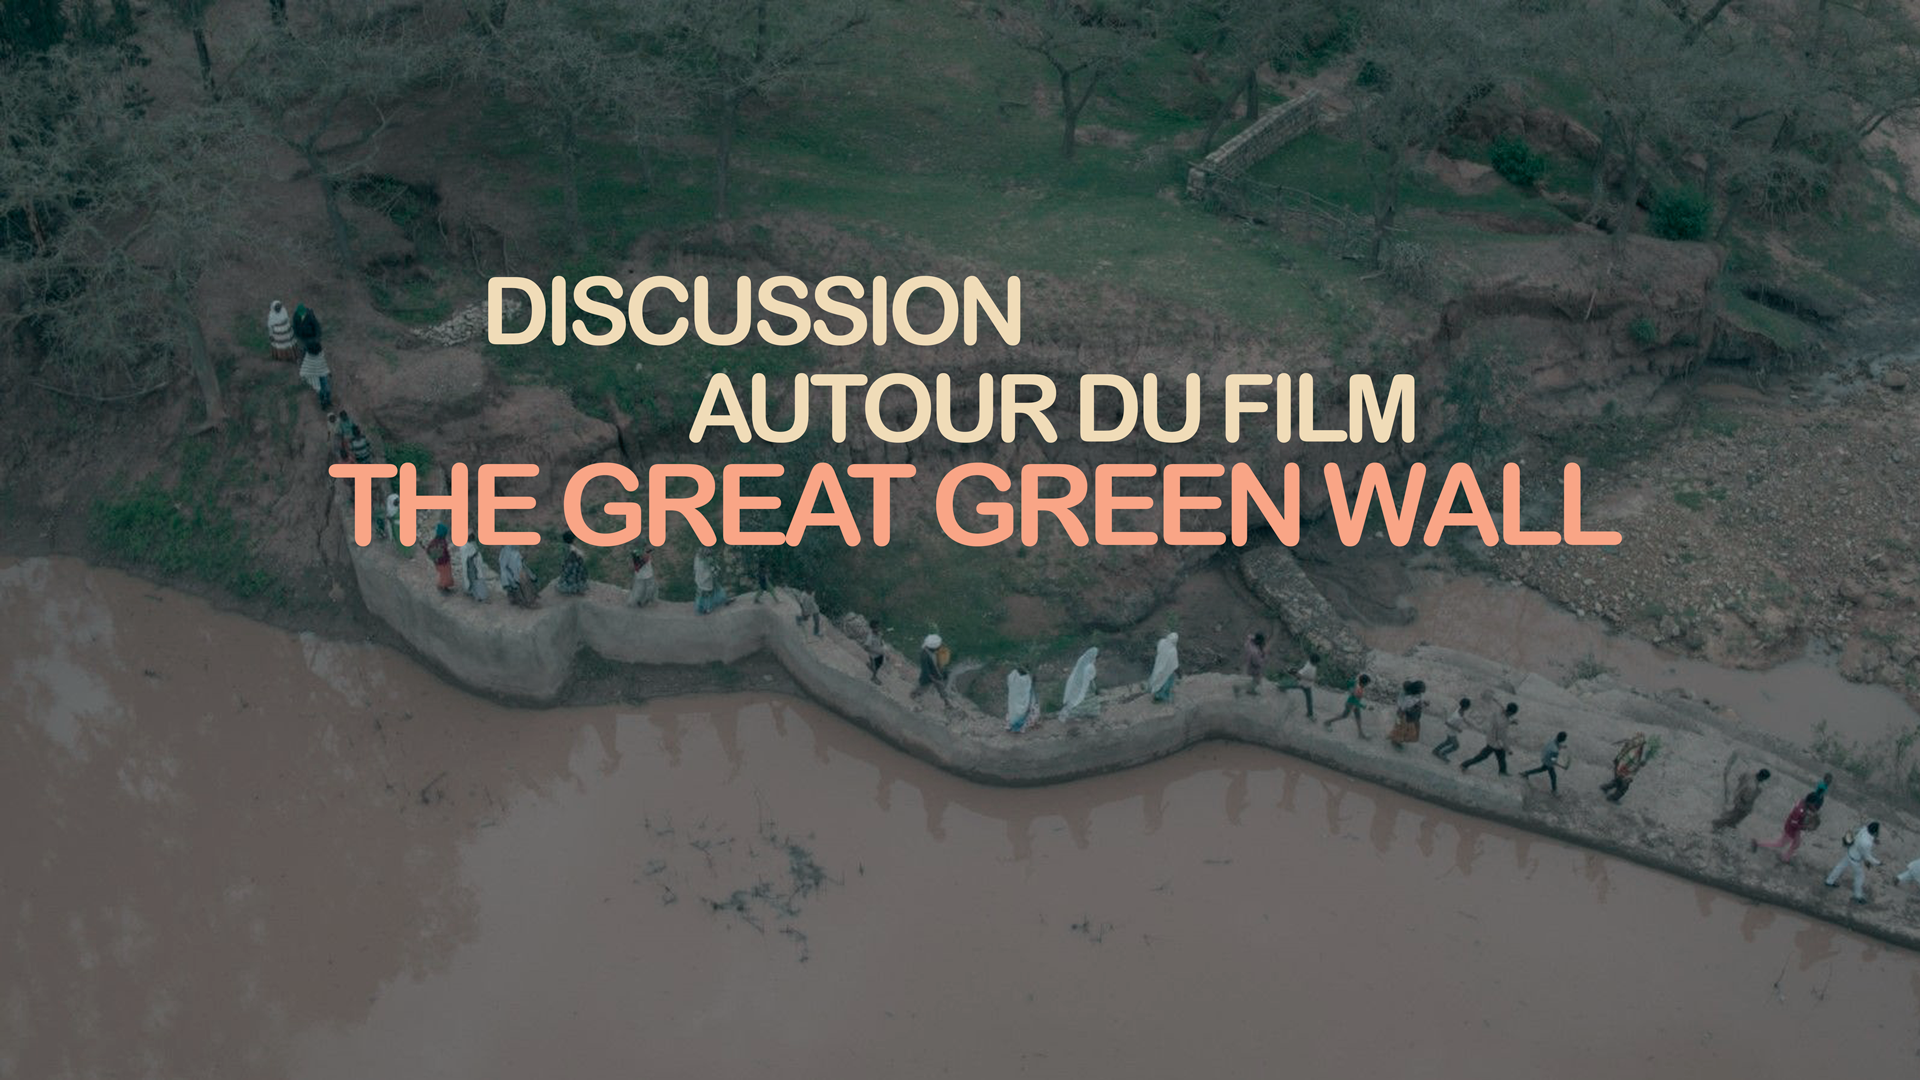 bandeaux_discussion_THE_GREAT_GREEN_WALL.png